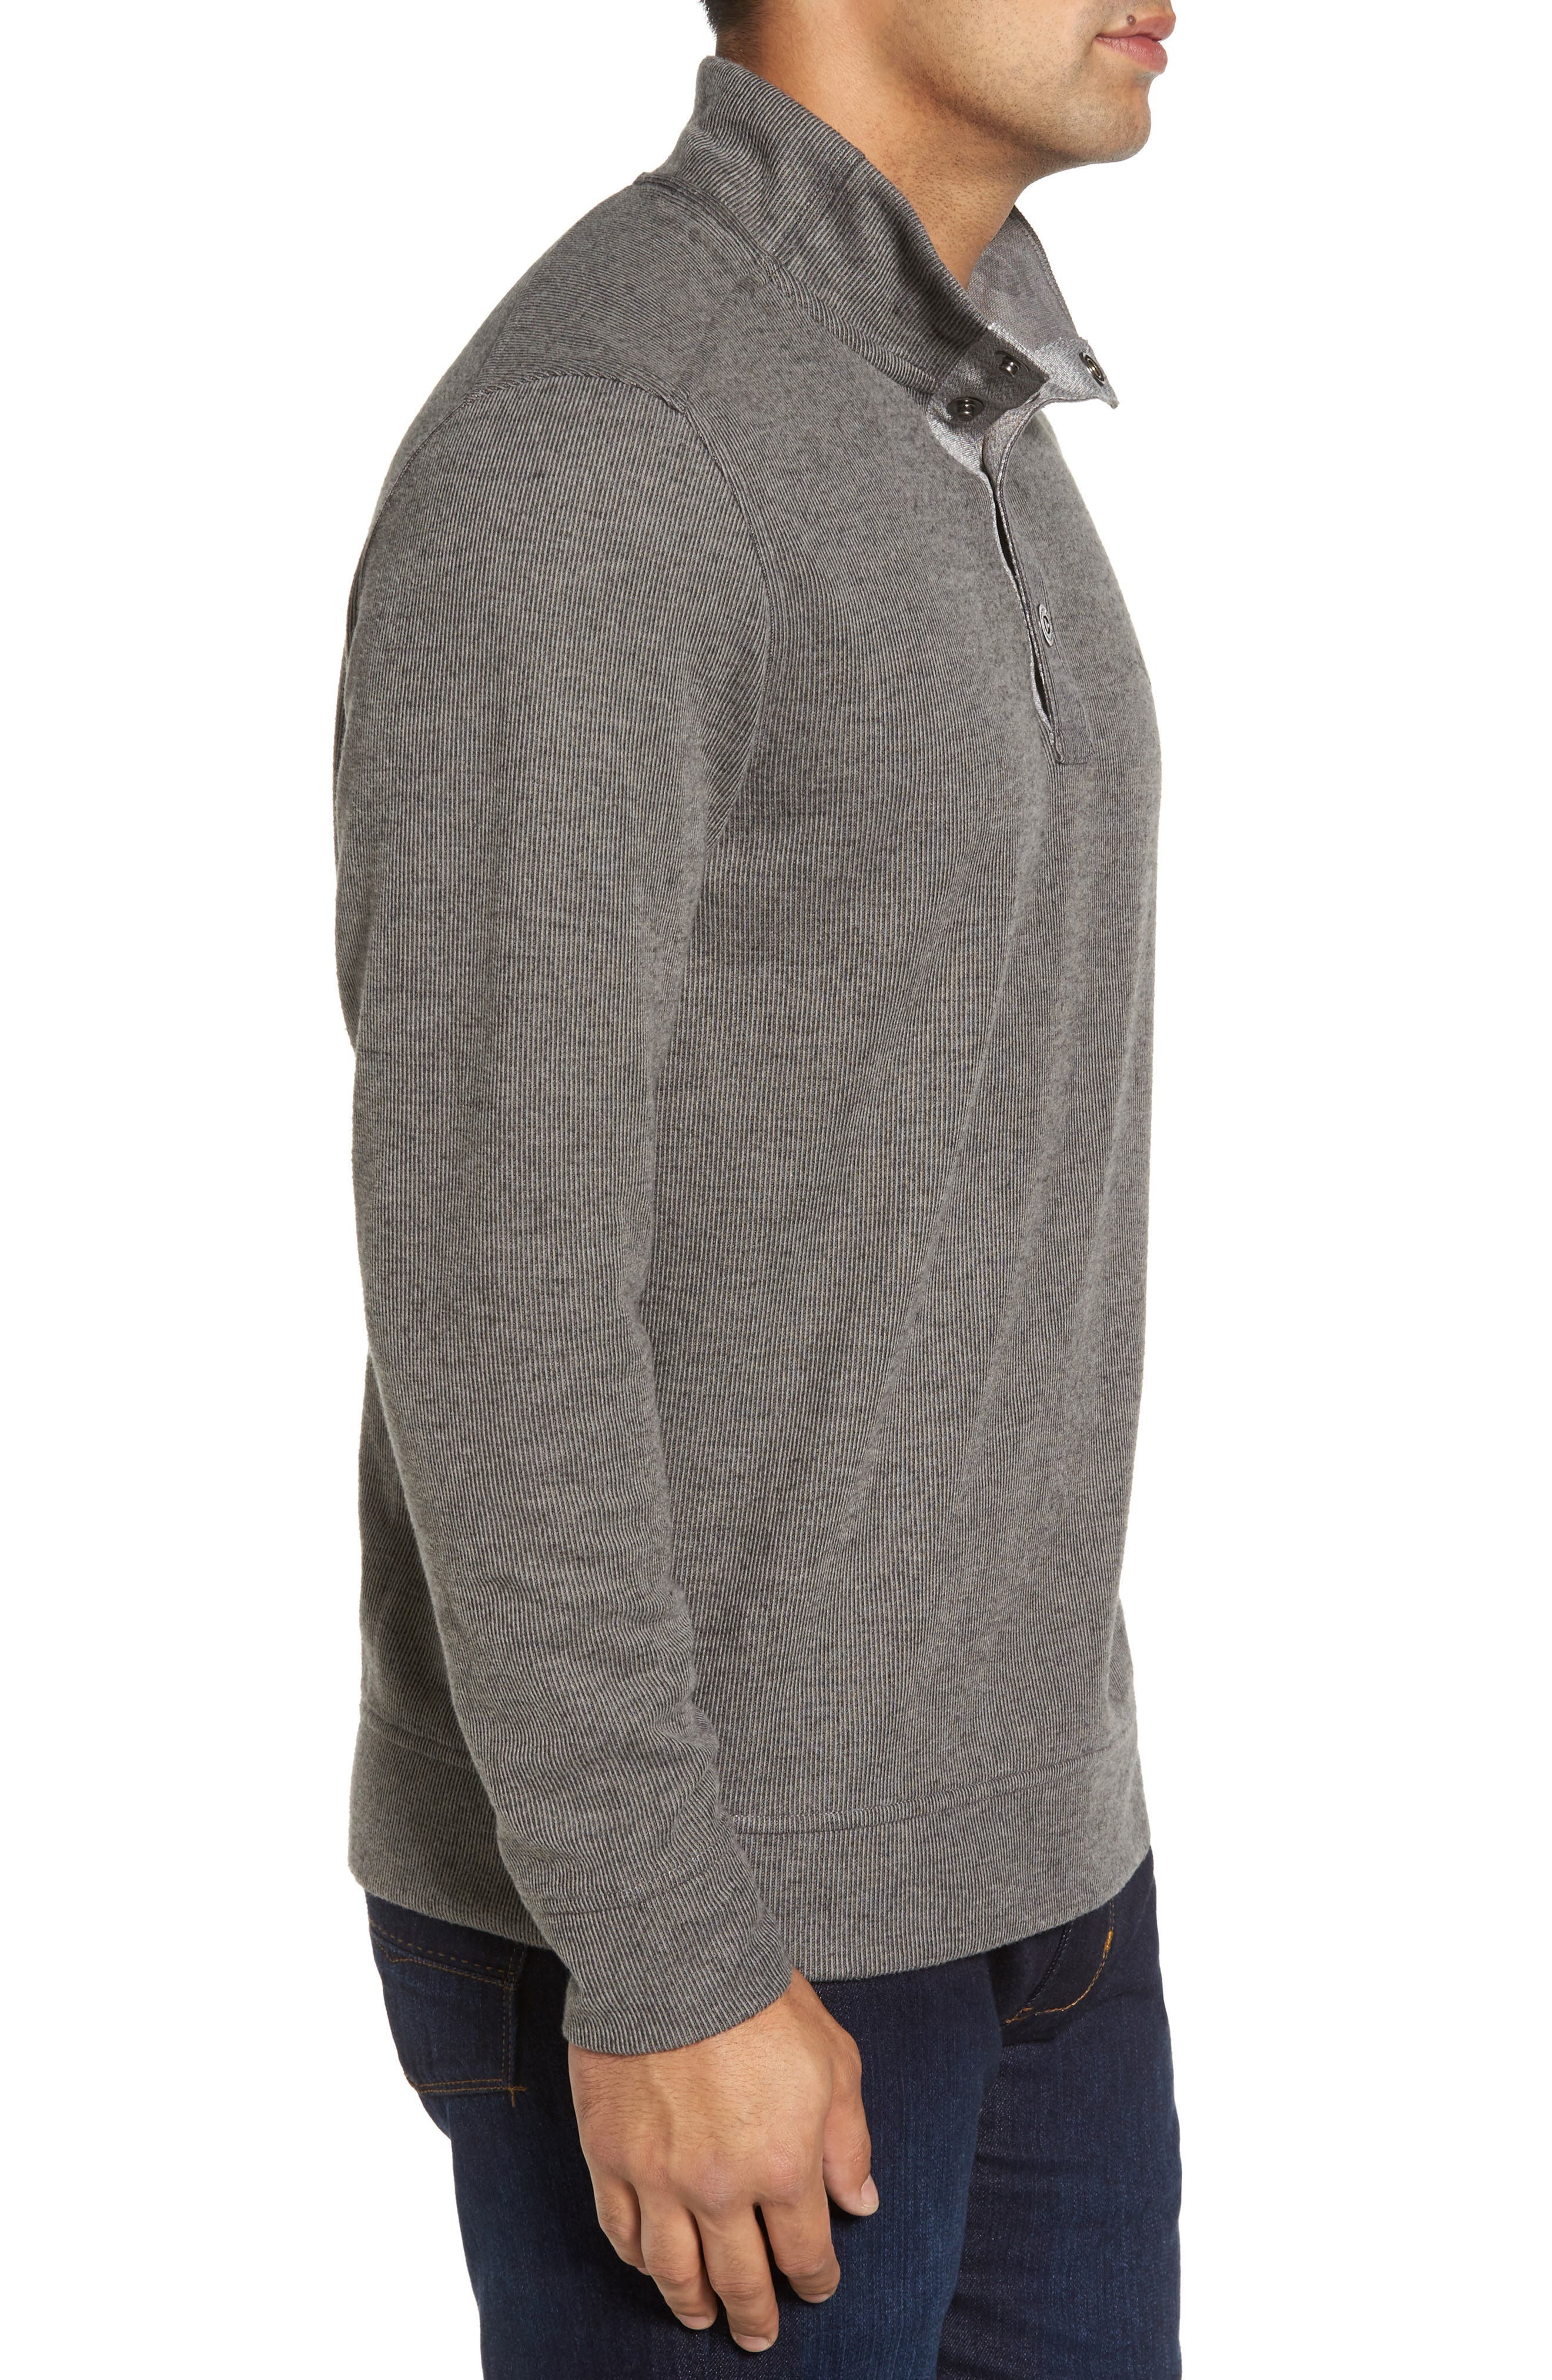 Cold Springs Snap Mock Neck Sweater,                             Alternate thumbnail 3, color,                             001